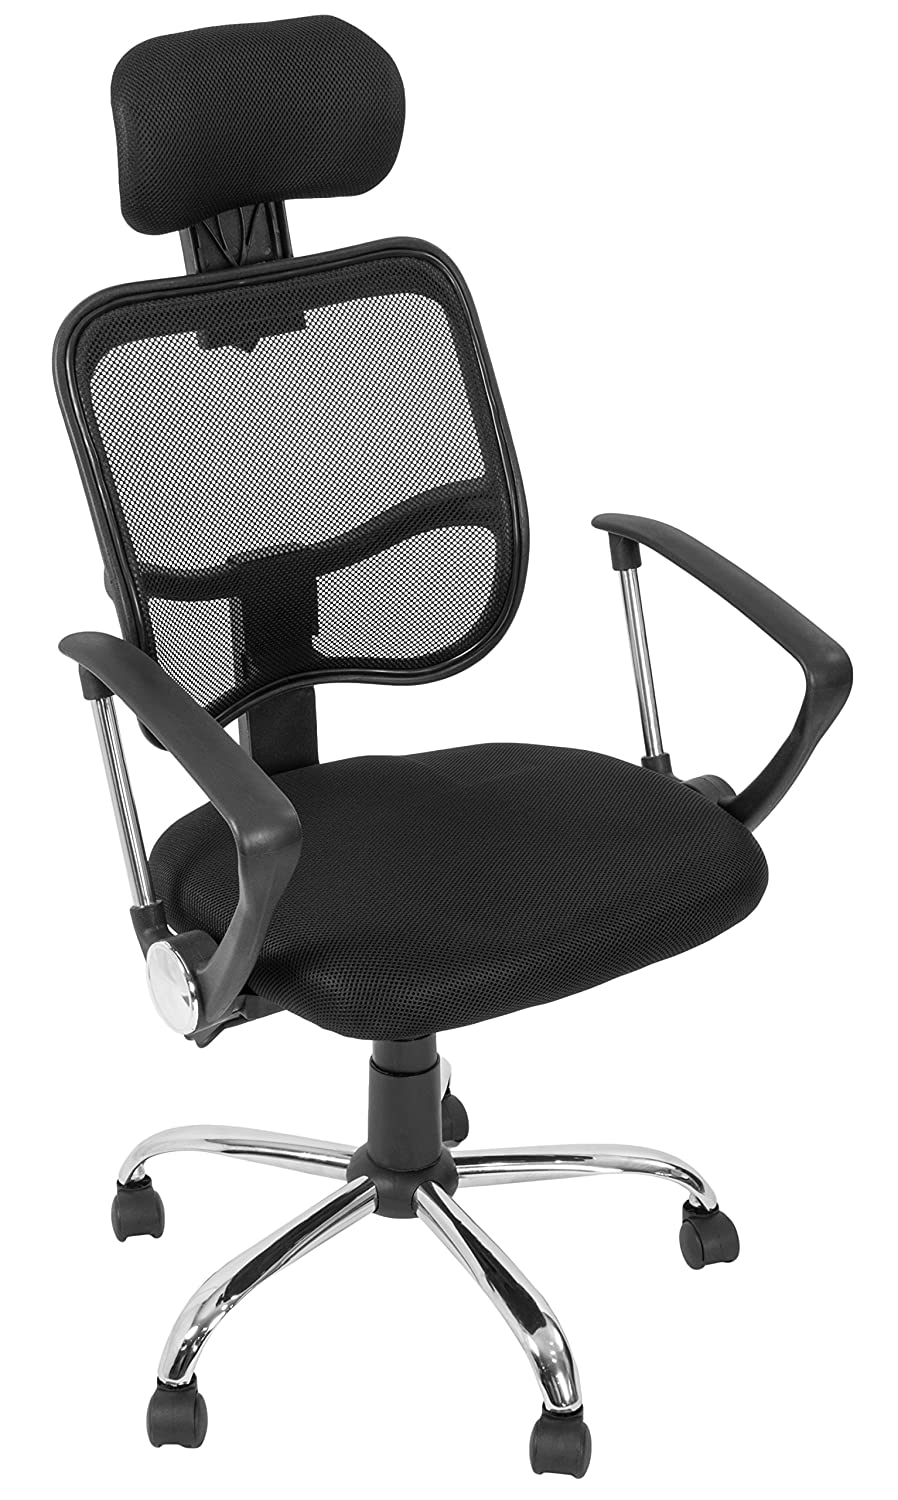 Amazon.com  VIVO Black Sleek Economy High Back Office Height Adjustable Swivel Mesh Computer Chair Arm and Head Rest (CHAIR-V001)  Office Products  sc 1 th 290 & Amazon.com : VIVO Black Sleek Economy High Back Office Height ...